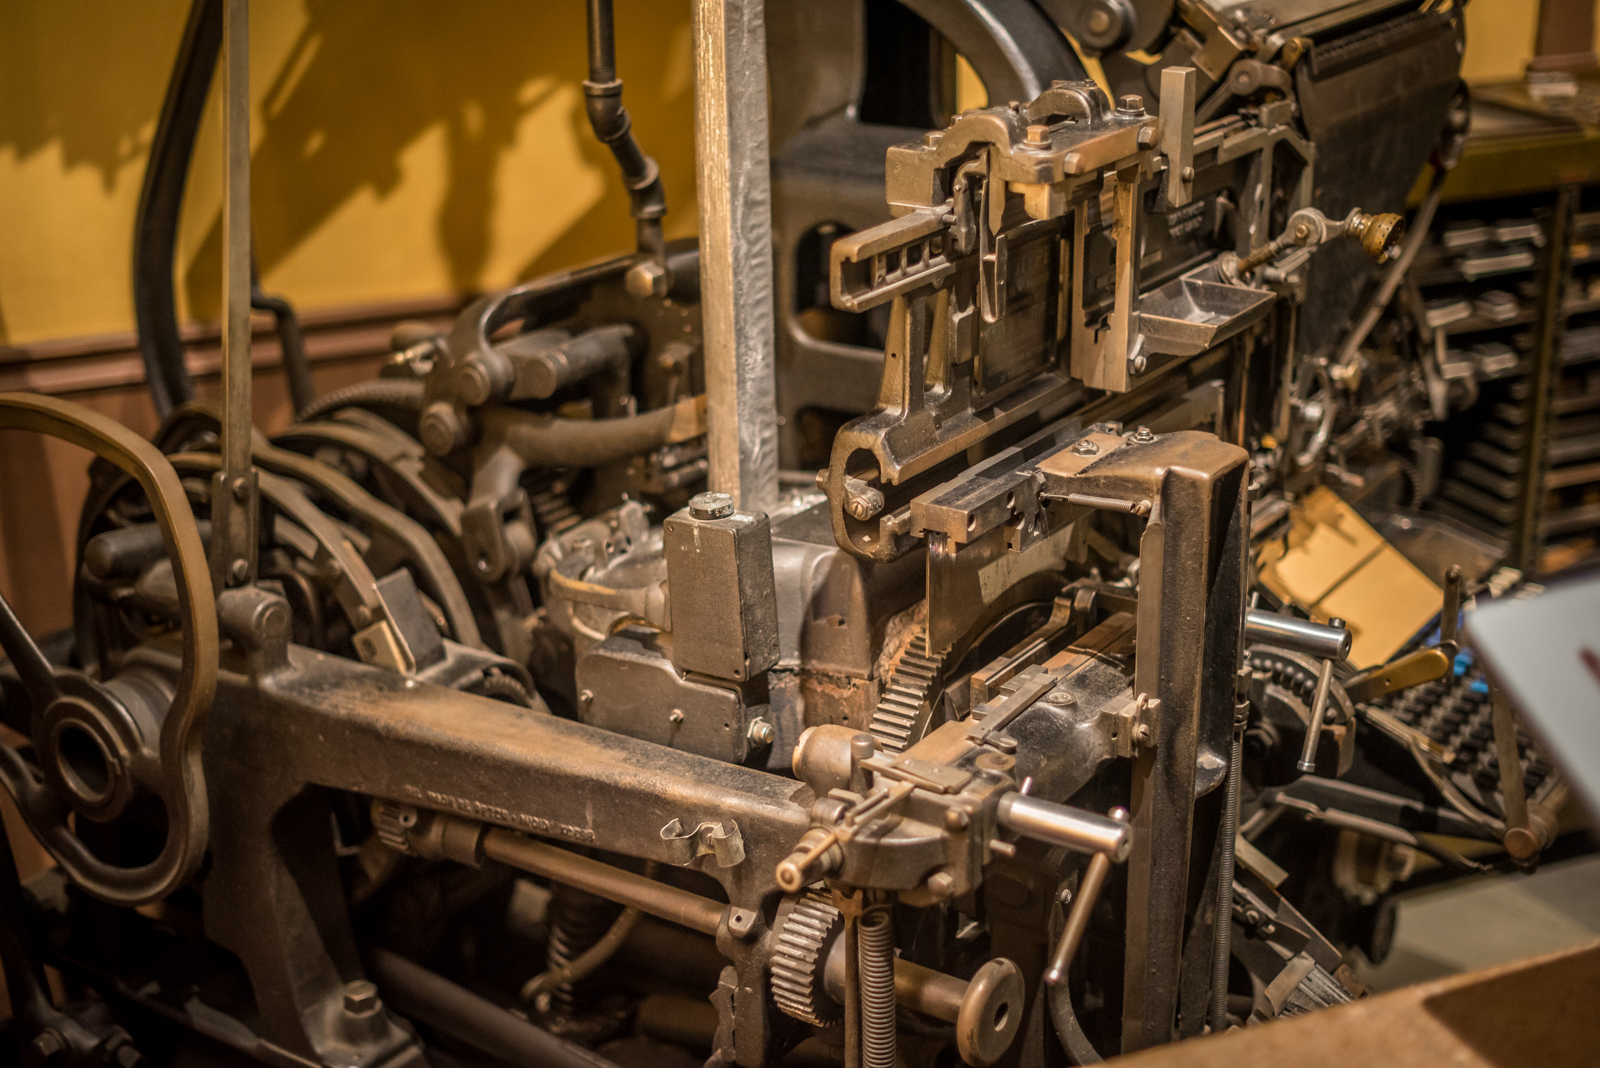 Detail of a linotype machine on display in the 'Surrey Stories Gallery'